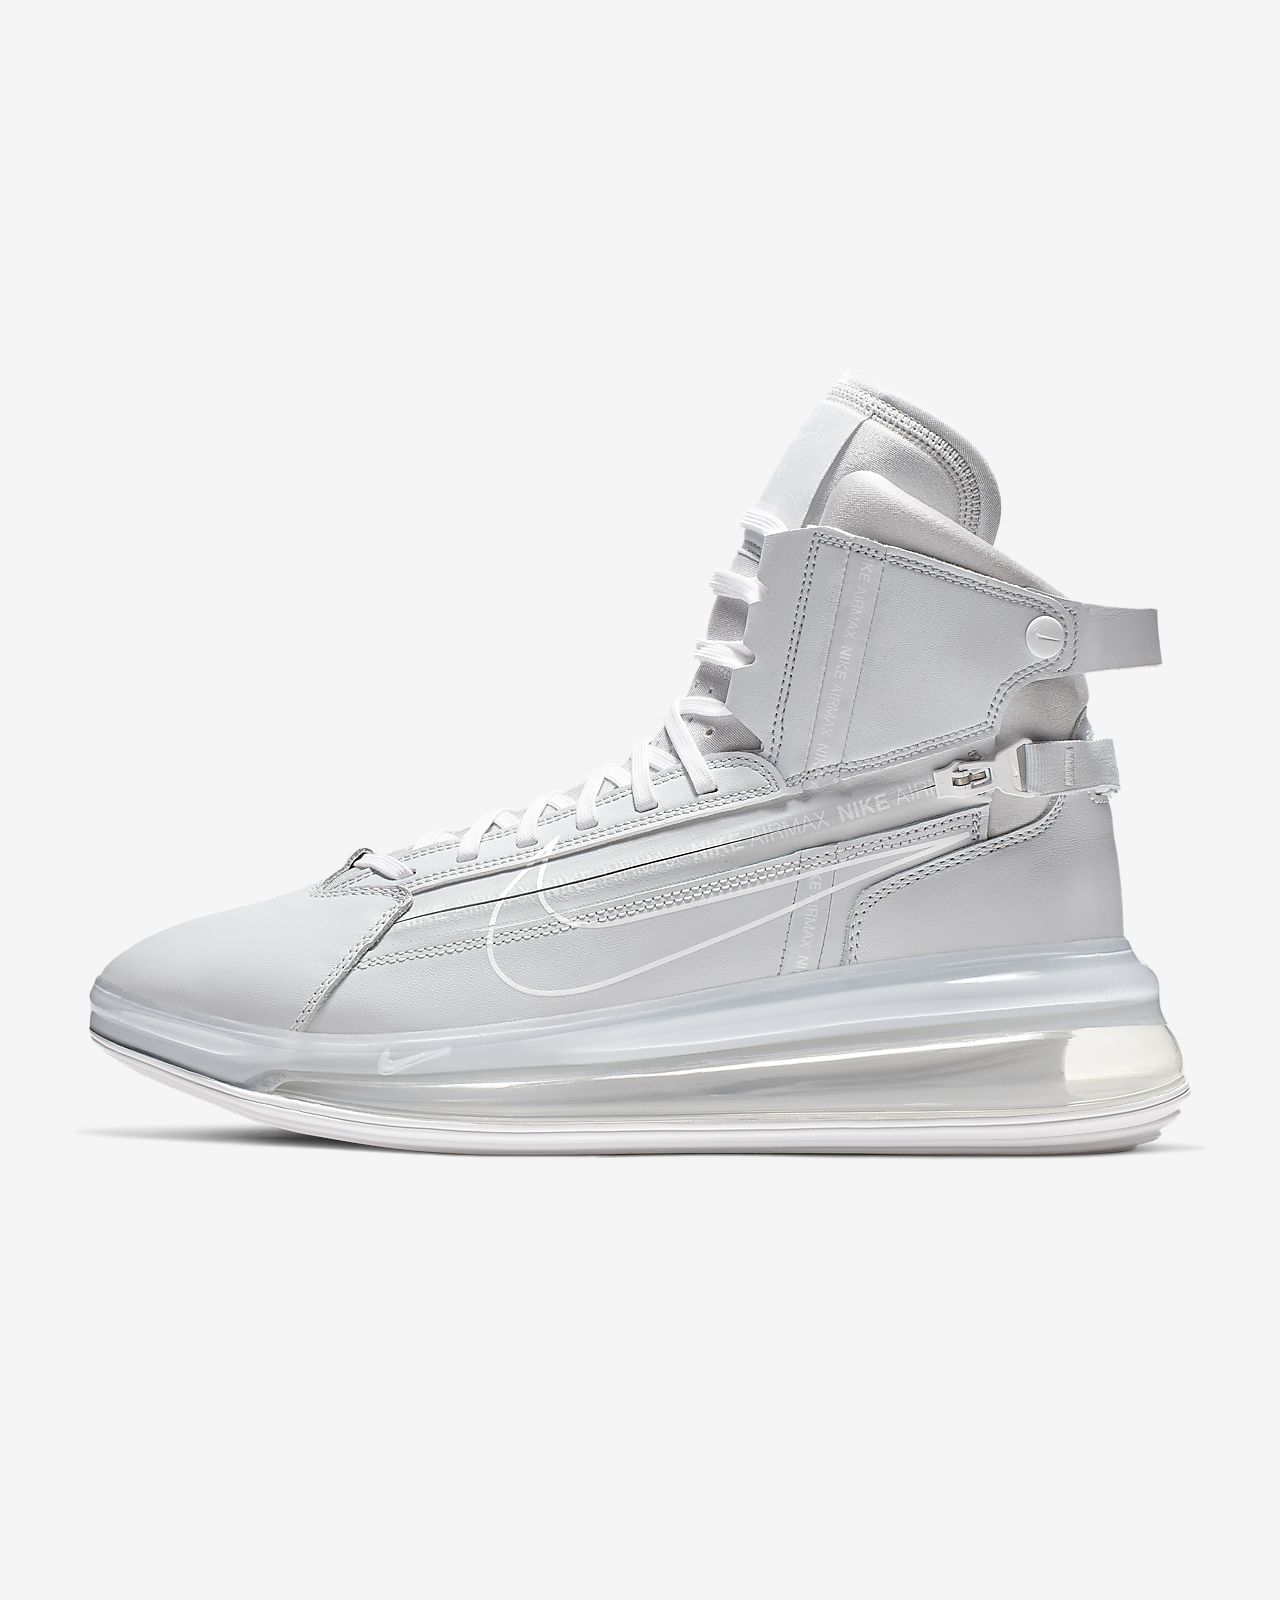 free shipping 21561 7e83c ... Nike Air Max 720 SATRN Men s Shoe